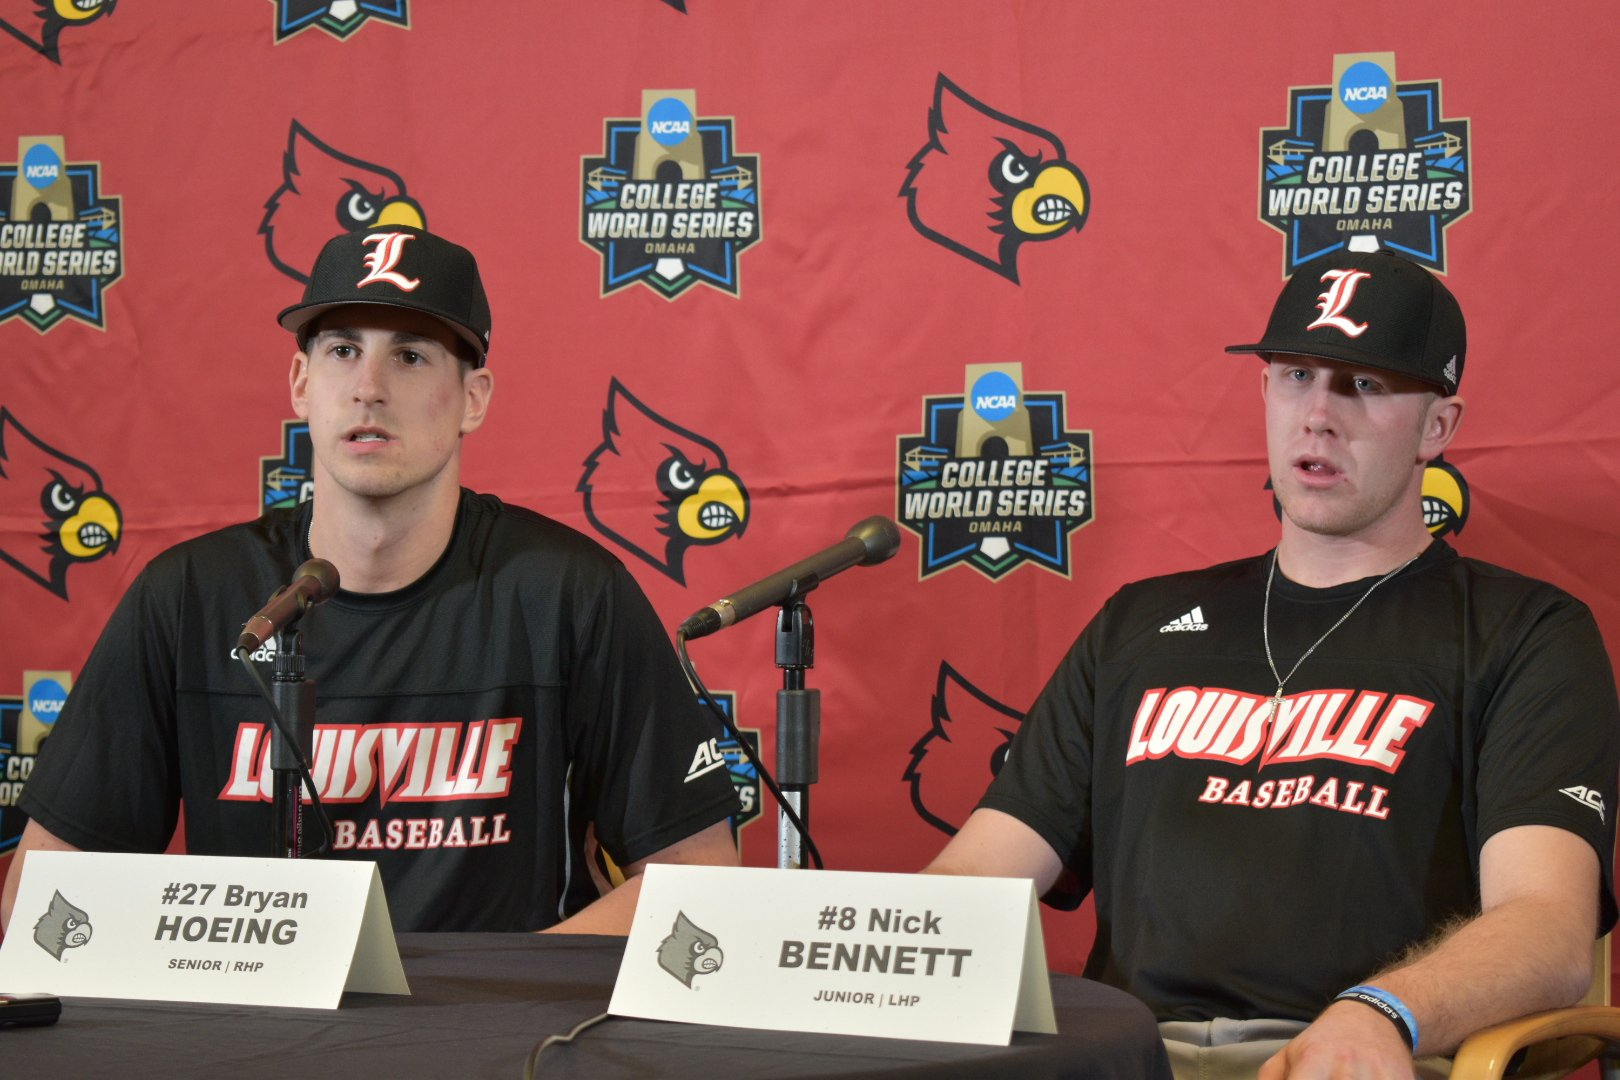 93.9 The Ville to Broadcast Games for Louisville Baseball ...